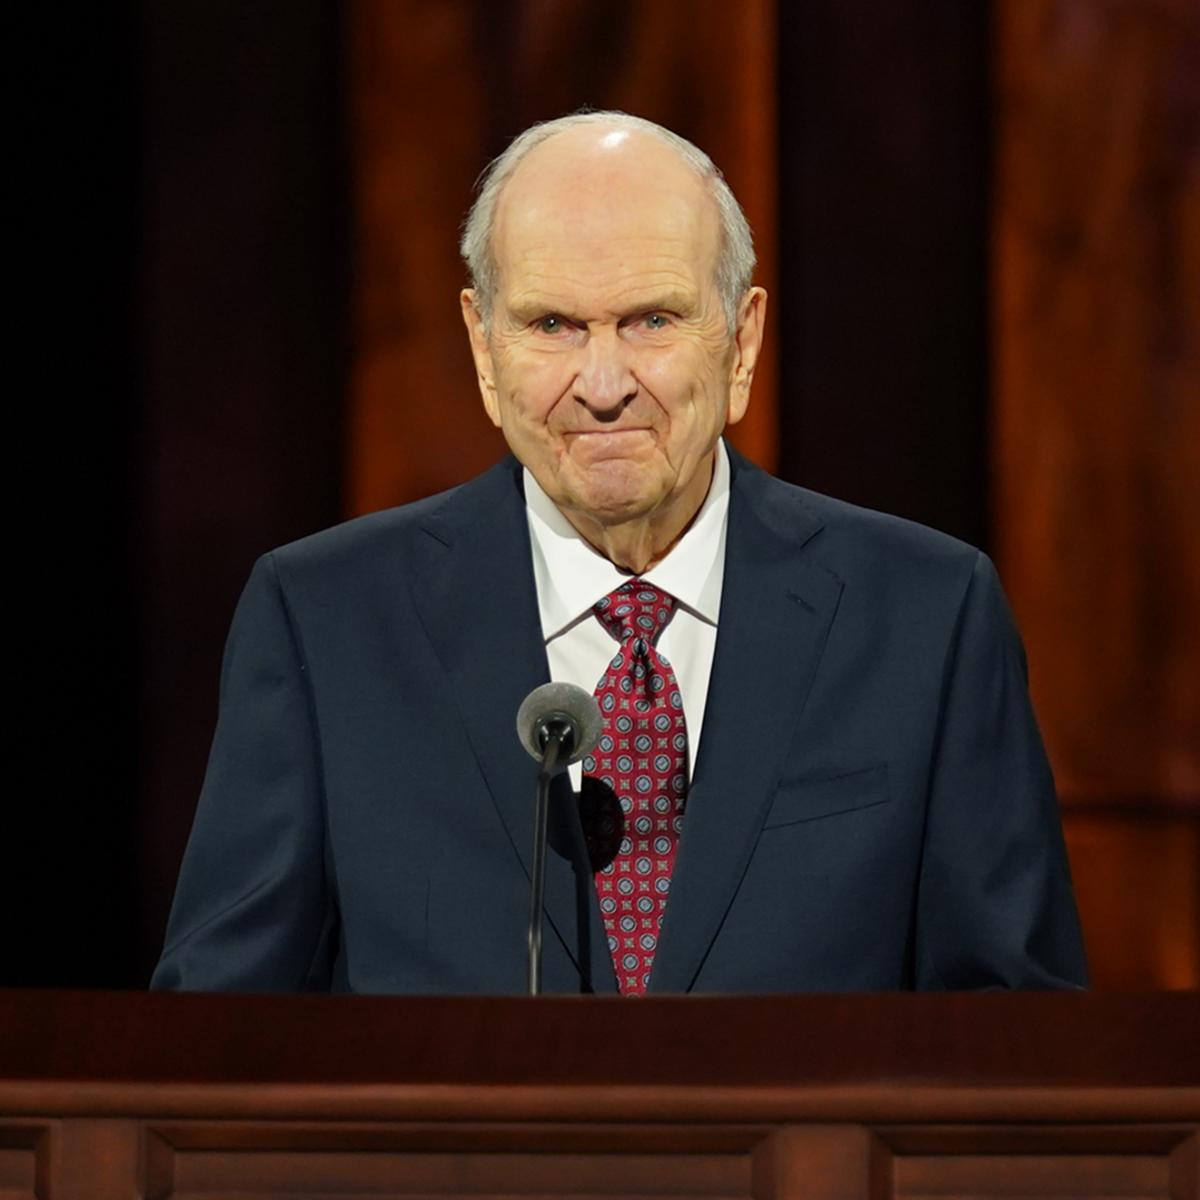 President Russell M. Nelson speaks during the opening session of the October 2020 general conference from the Conference Center Theater on Temple Square in Salt Lake City, Utah, on Saturday, October 3.